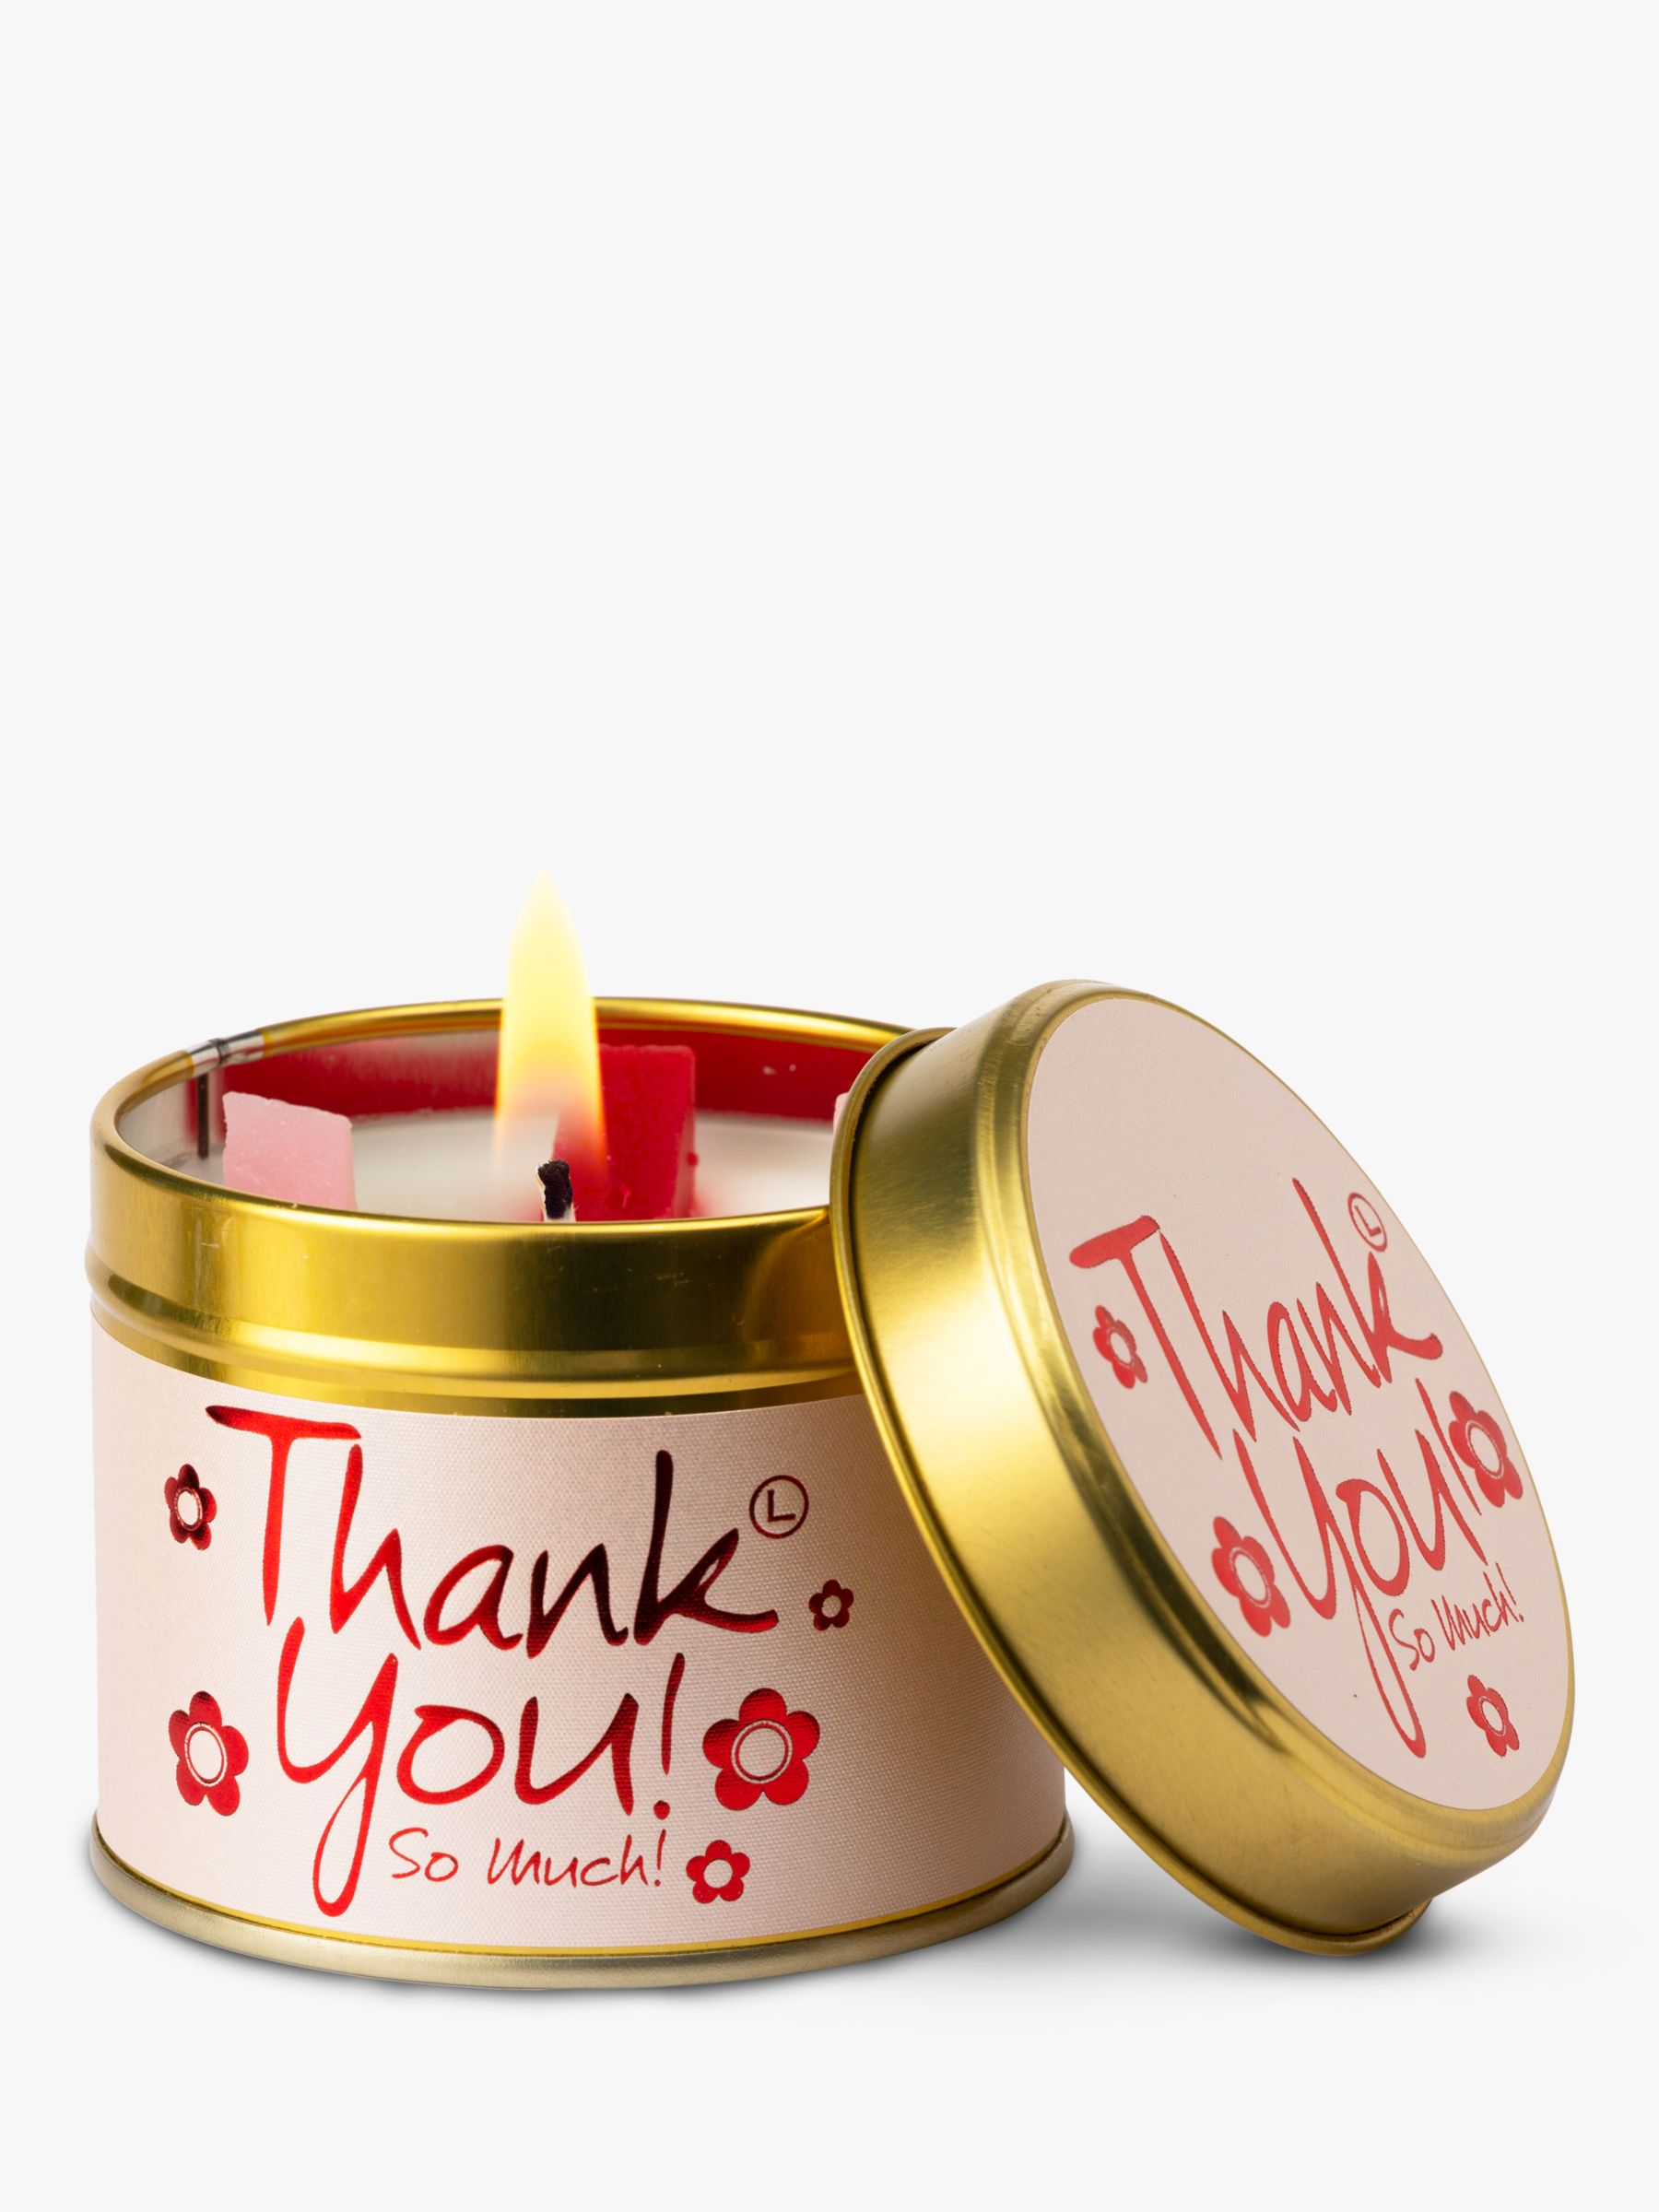 Lily-Flame Lily-flame Thank You! Scented Candle Tin